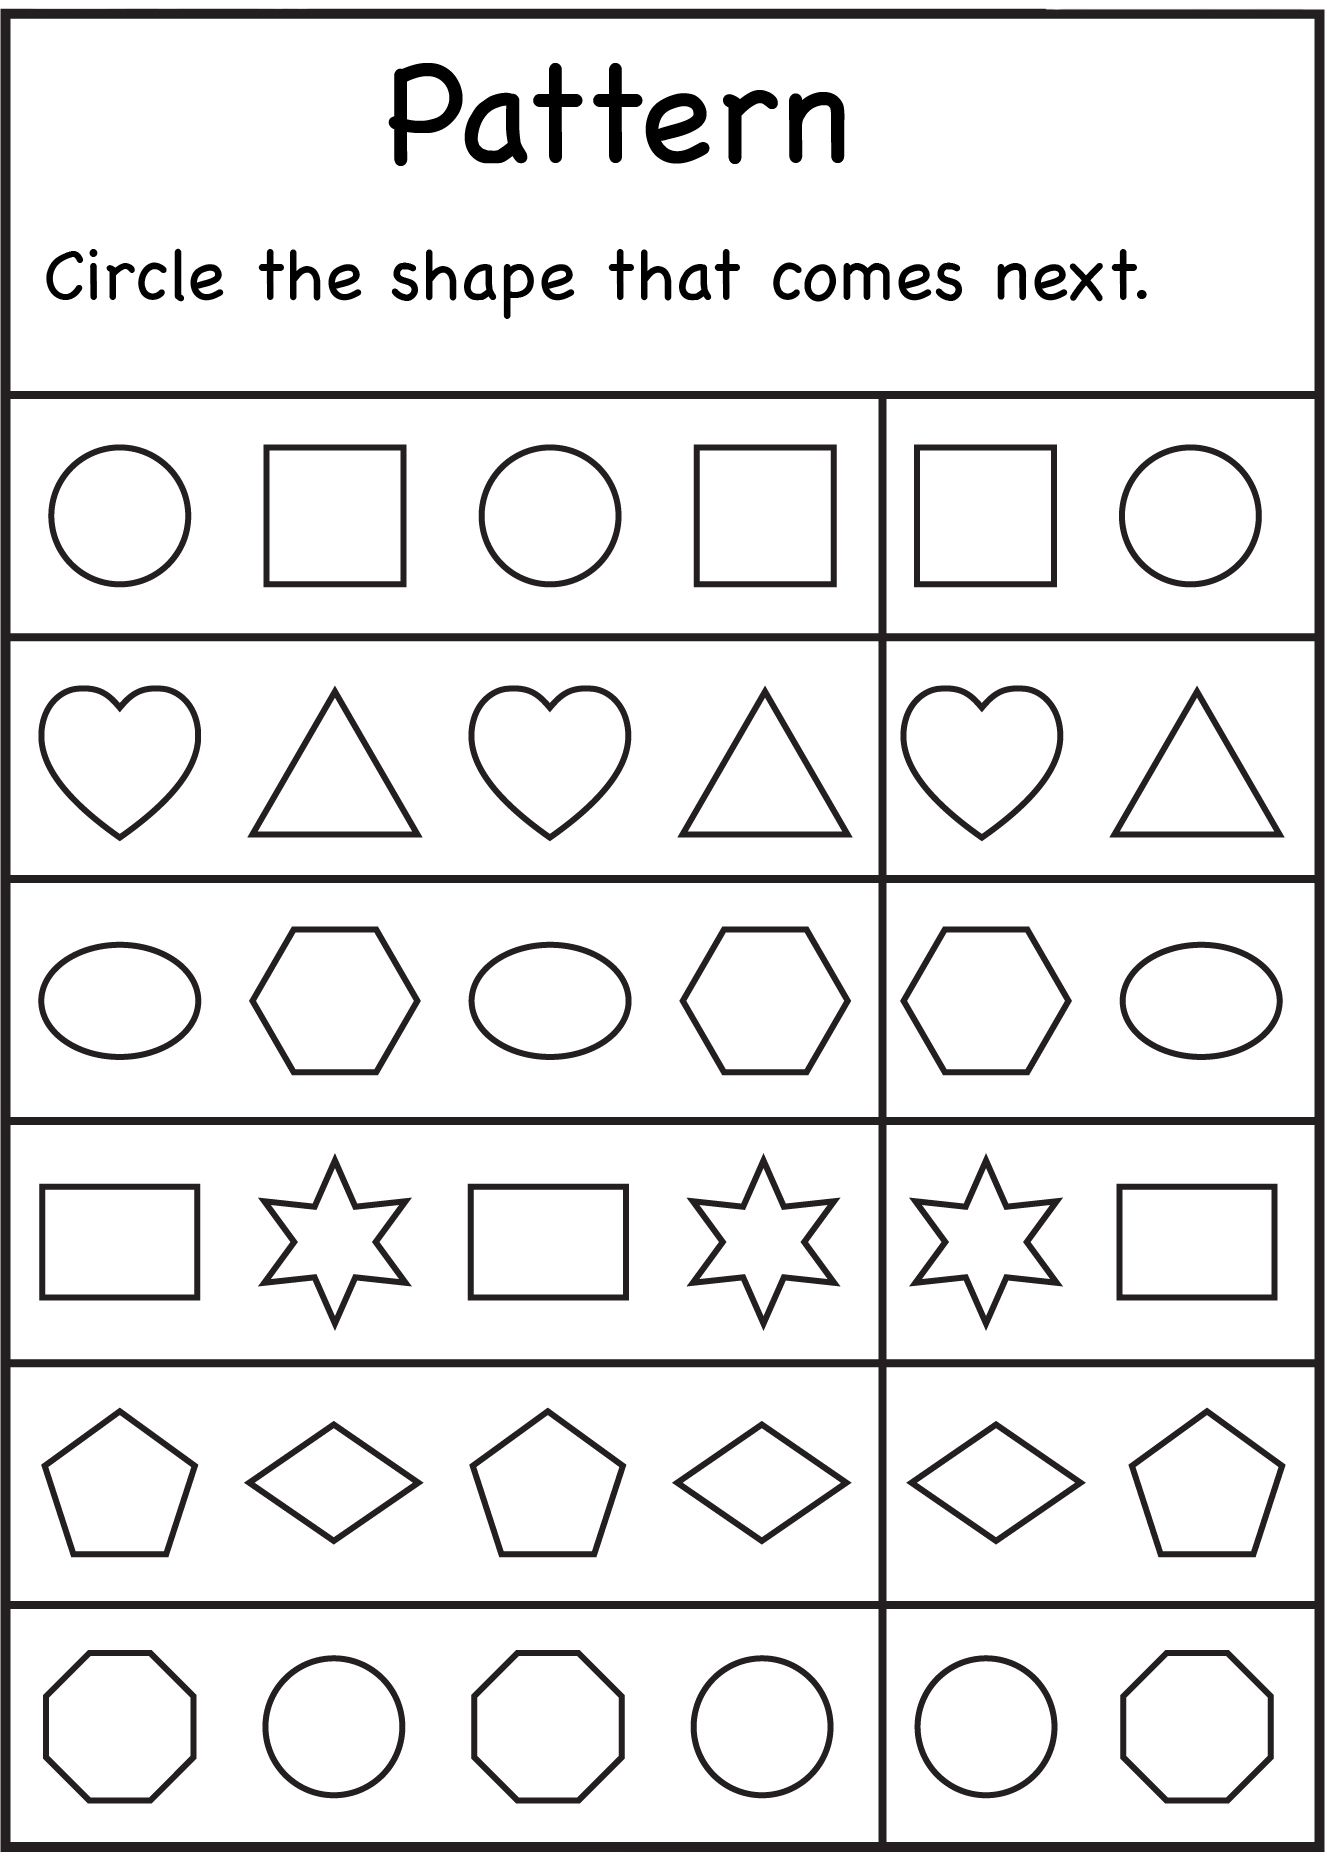 Kindergarten Worksheets | Math | Preschool Worksheets, Kindergarten